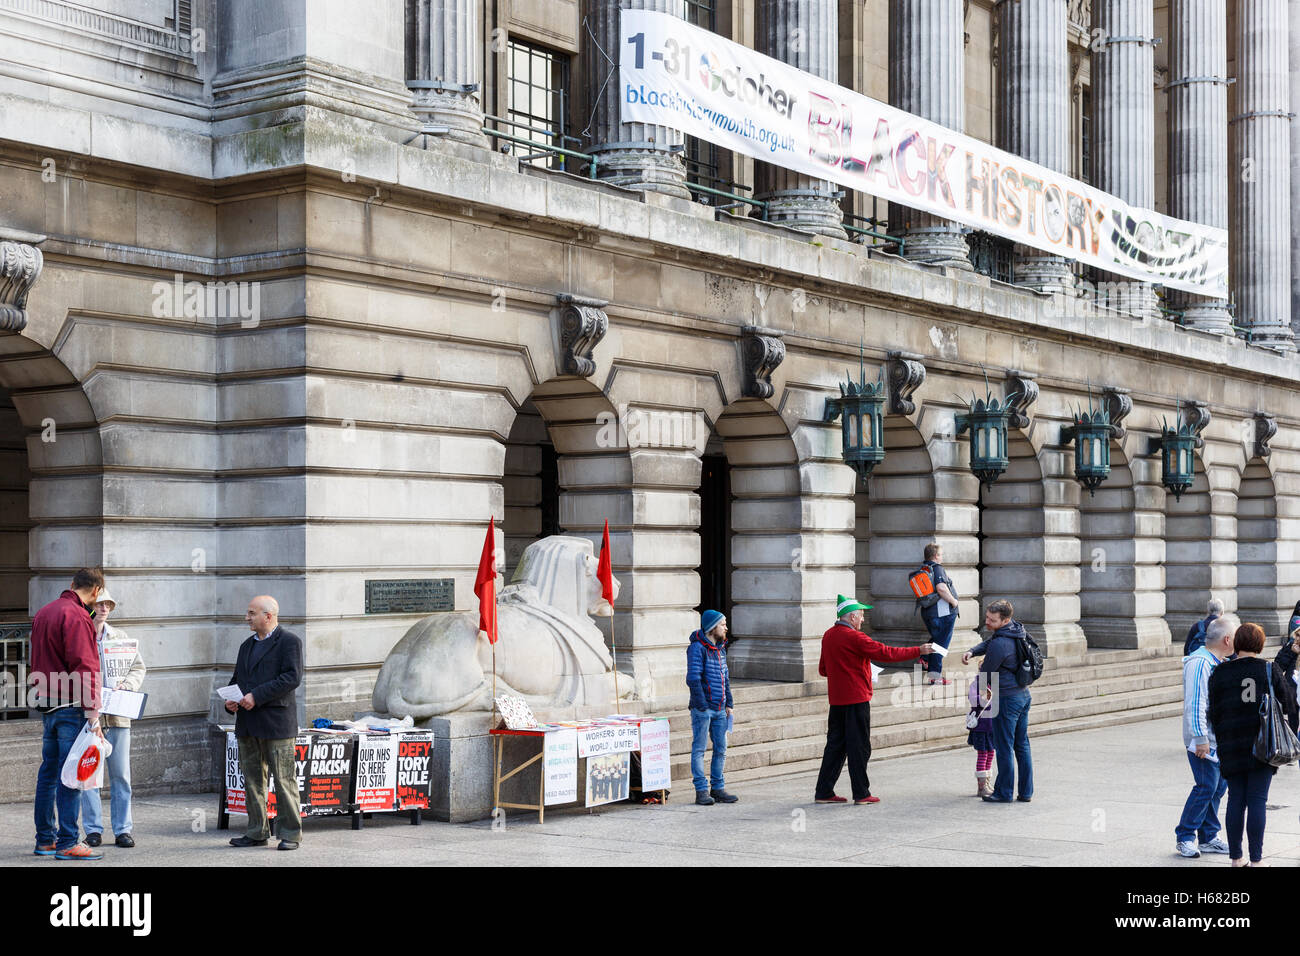 Activists handing out leaflets on behalf of Socialist Worker. In Nottingham, England. - Stock Image